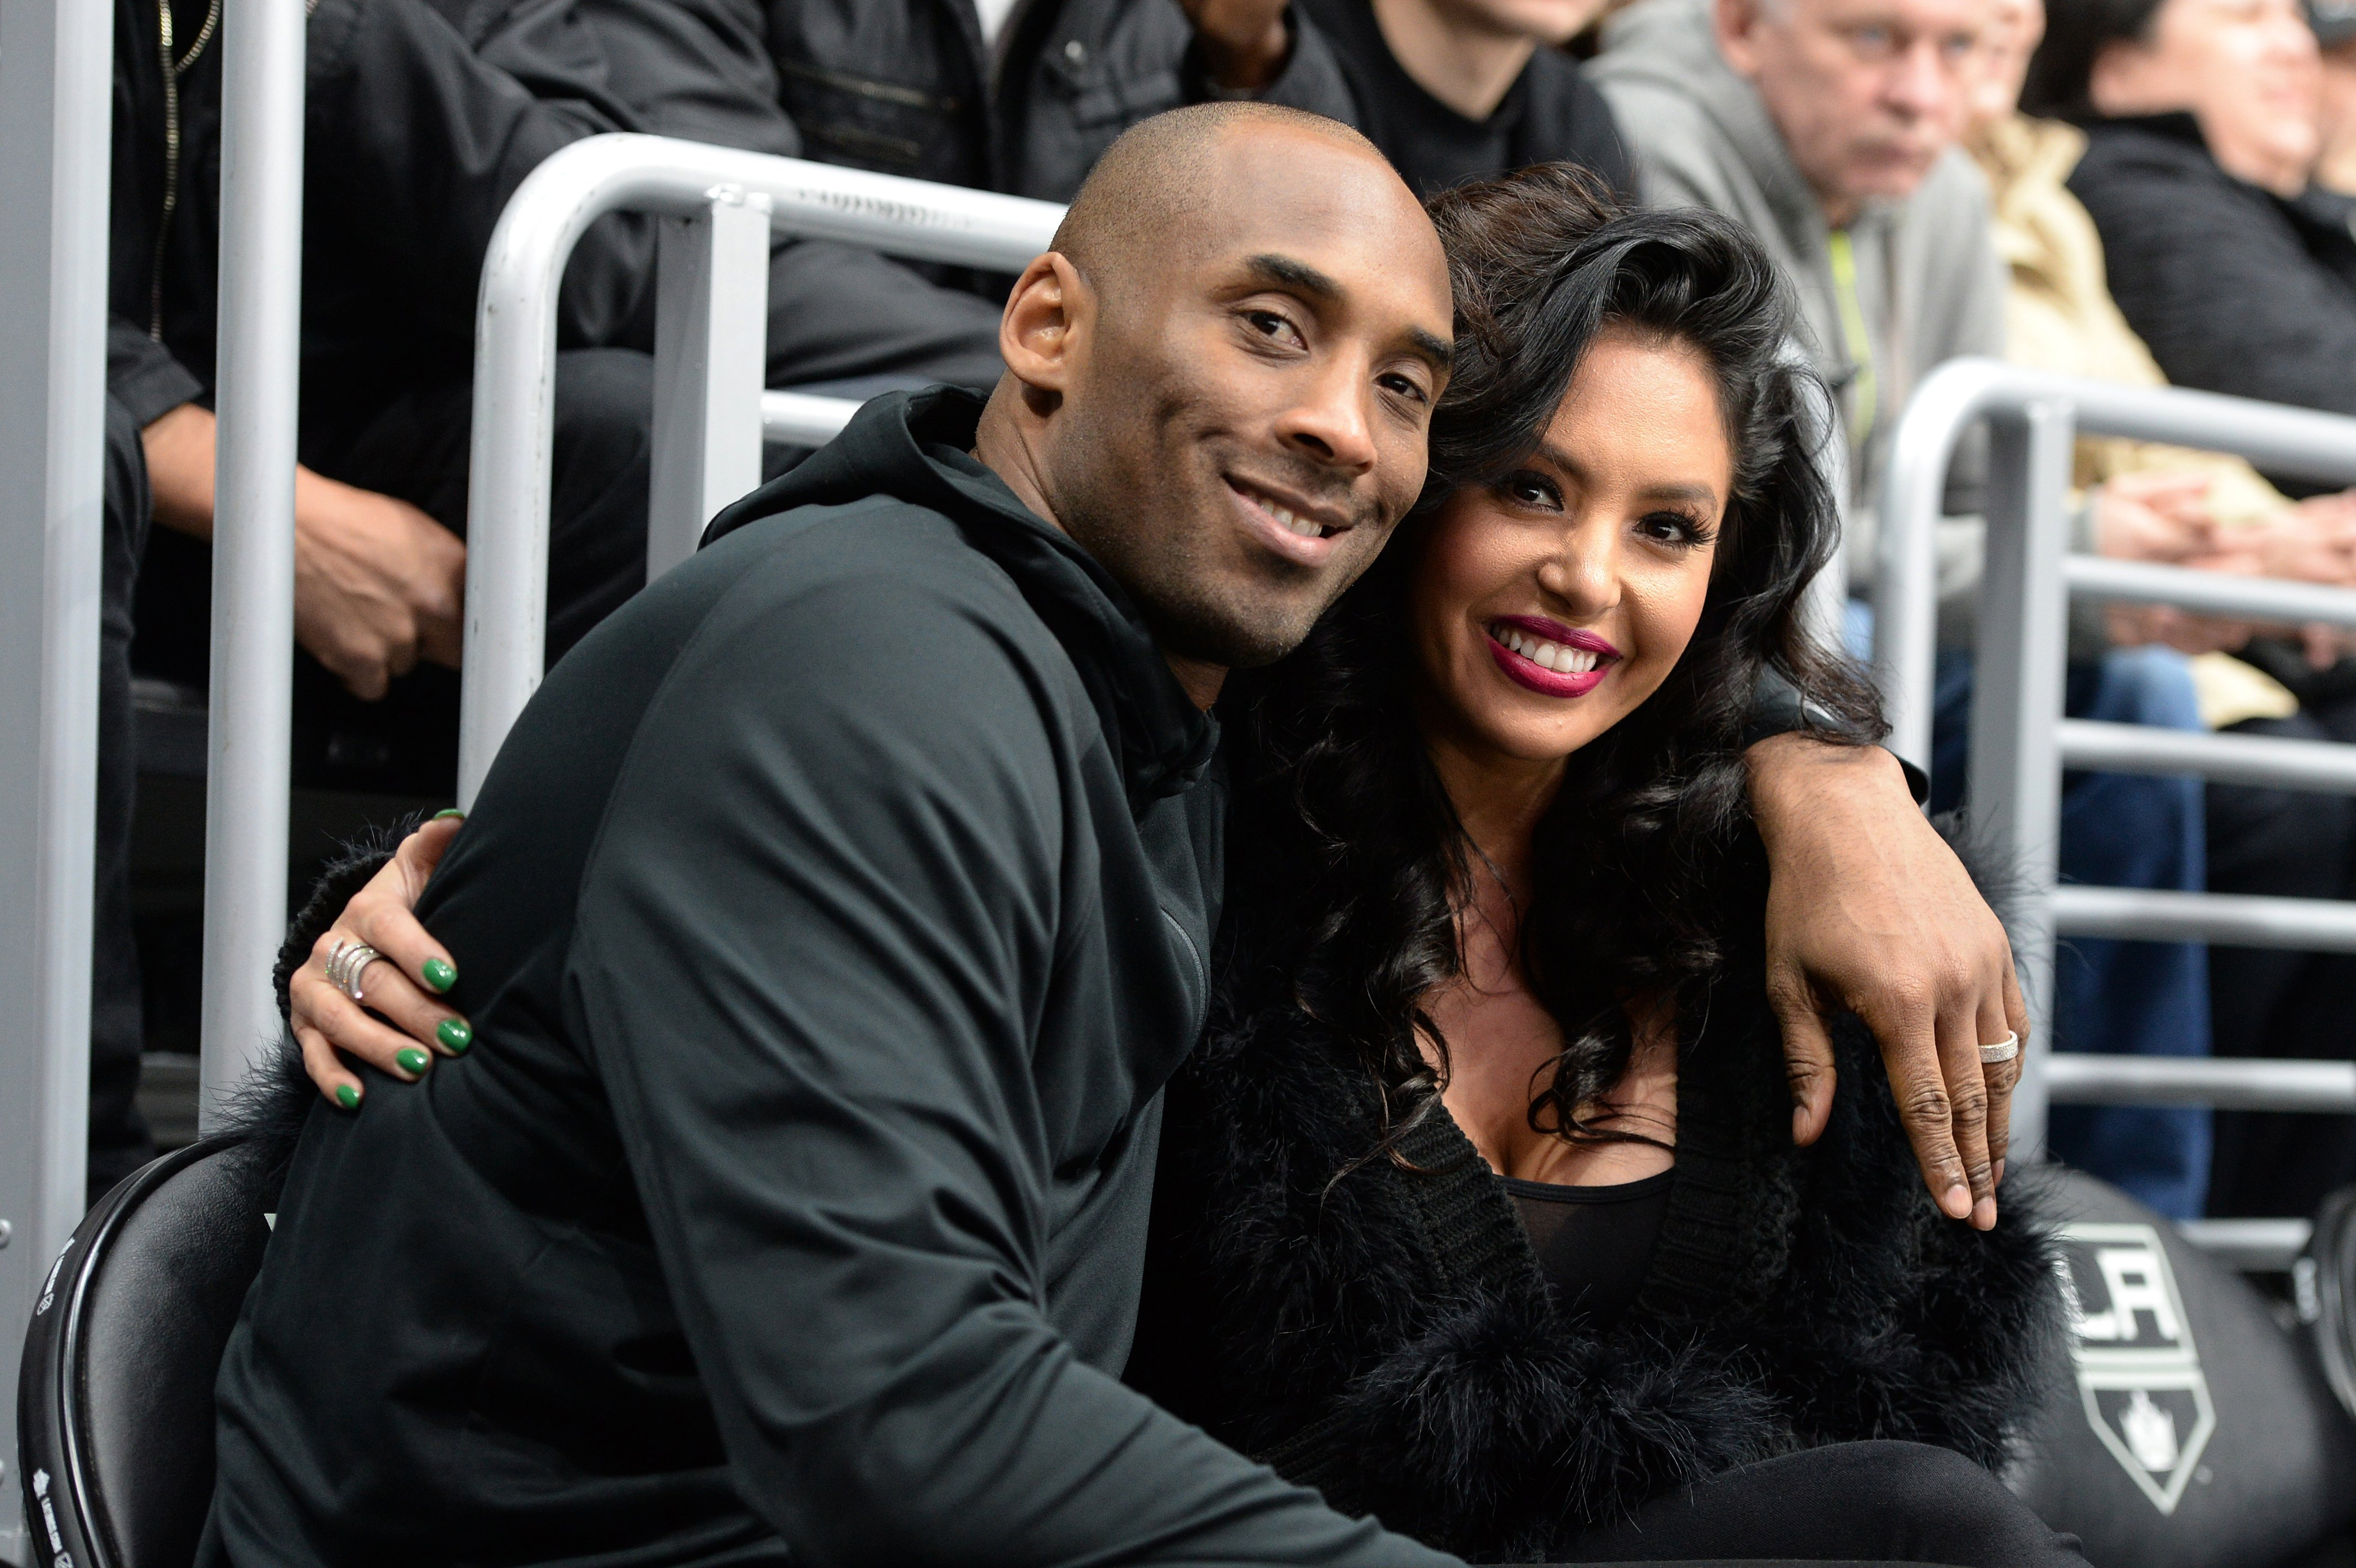 Guard Kobe Bryant and his wife Vanessa Bryant pose for a photo during a game between the Los Angeles Kings and the Washington Capitals at STAPLES Center on March 09, 2016  | Photo: GettyImages